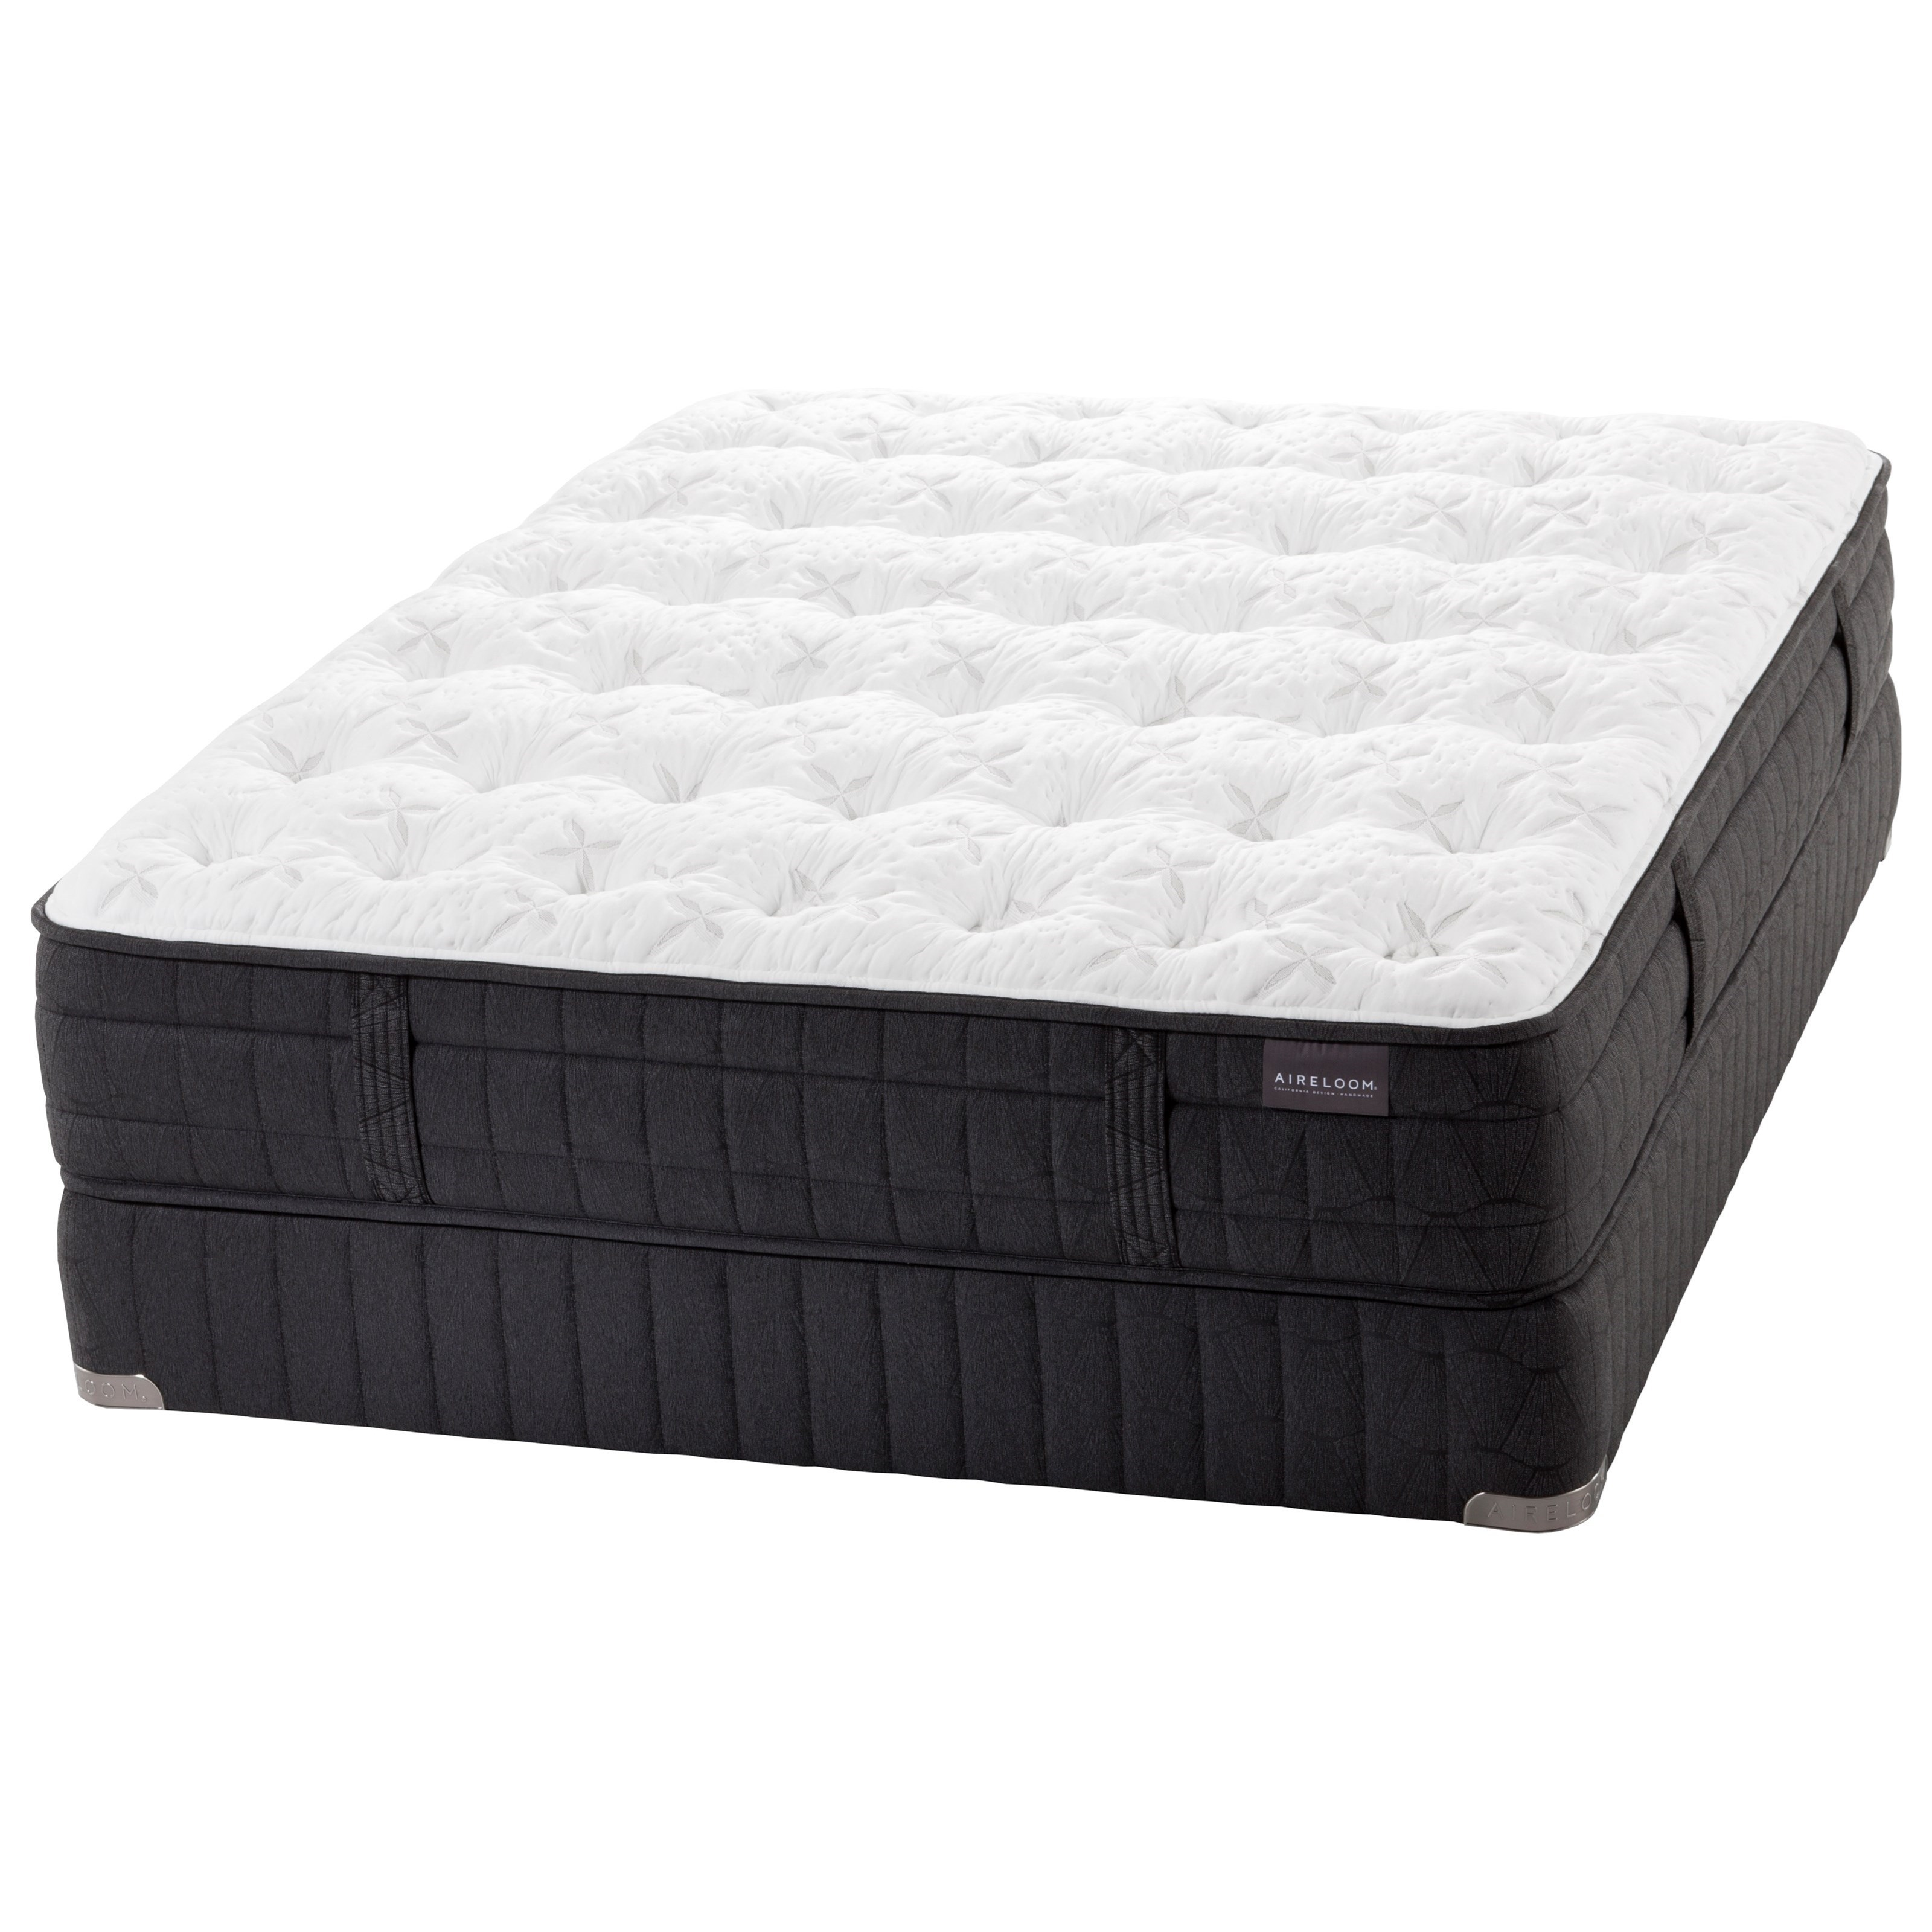 AL Madrid Aireloom California King Plush Mattress by Aireloom Bedding at HomeWorld Furniture